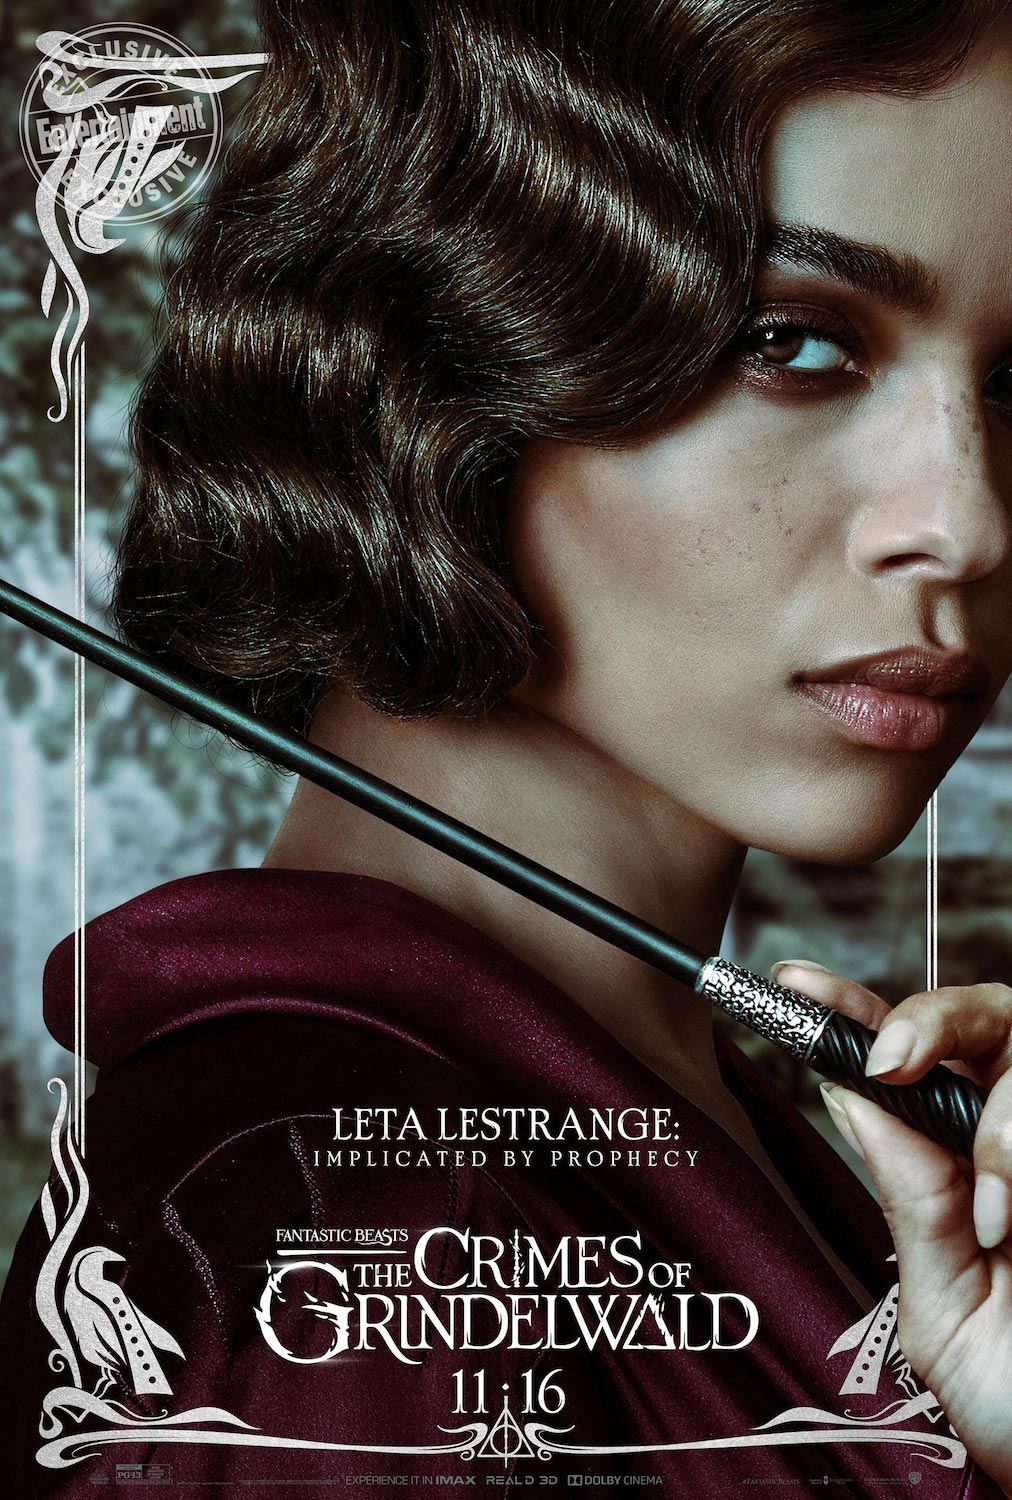 Leta Lestrange comes from a prolific wizarding family, but we don't know much about her. Does the prophecy relate to her, or someone in her family?